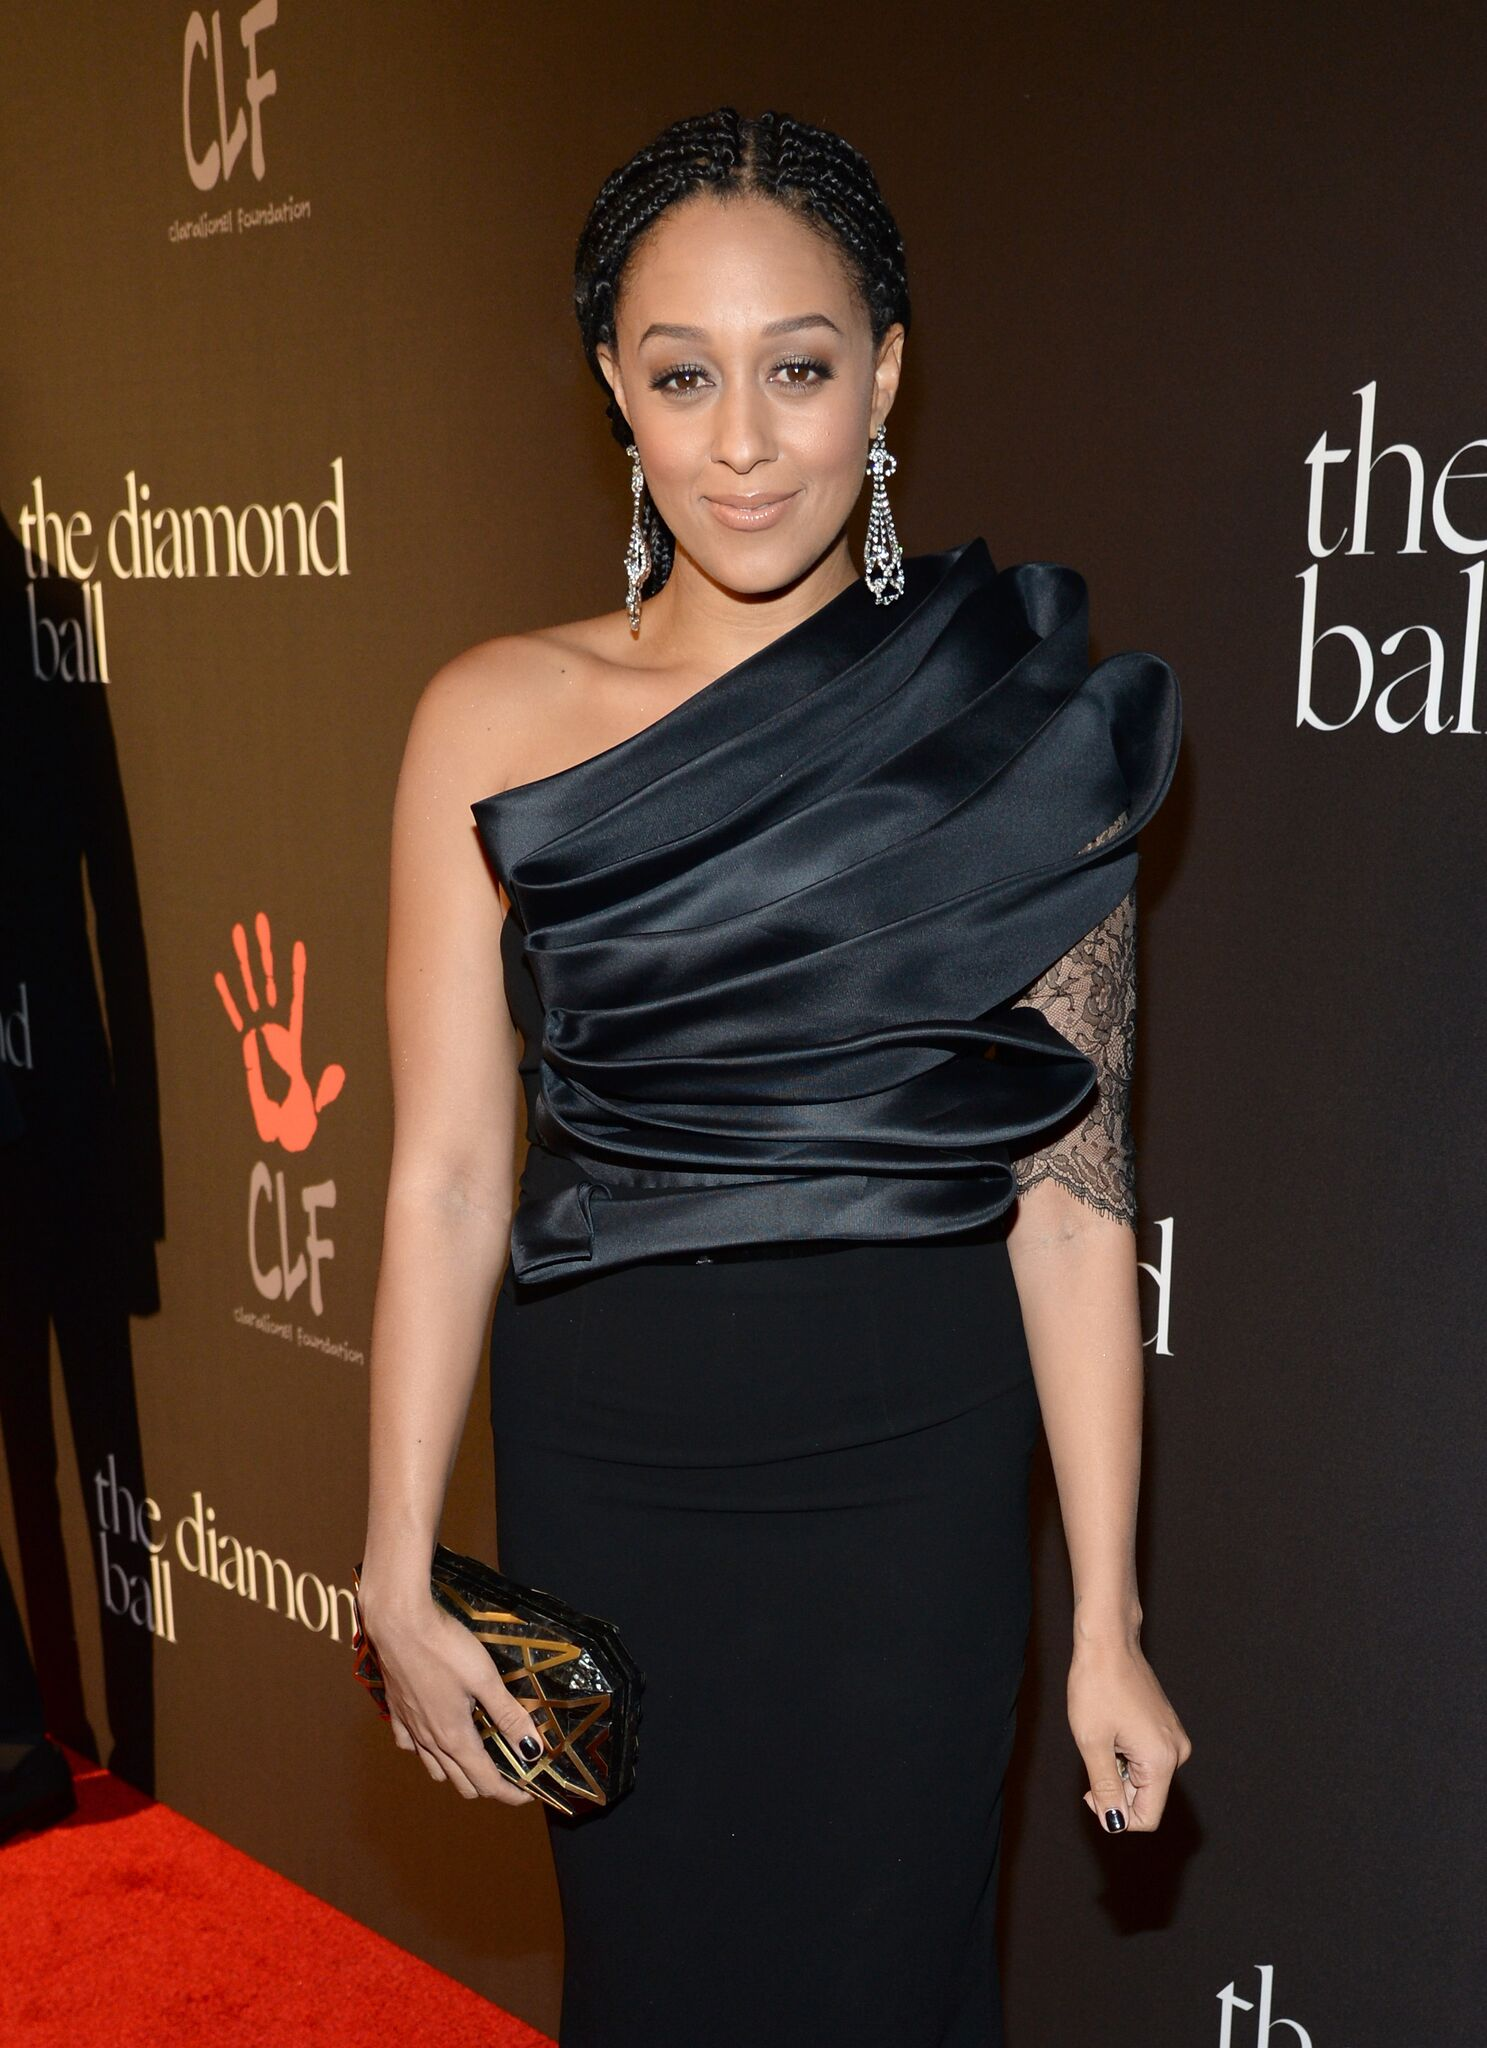 Actress Tia Mowry-Hardrict attends Rihanna's First Annual Diamond Ball at The Vineyard l Getty Images